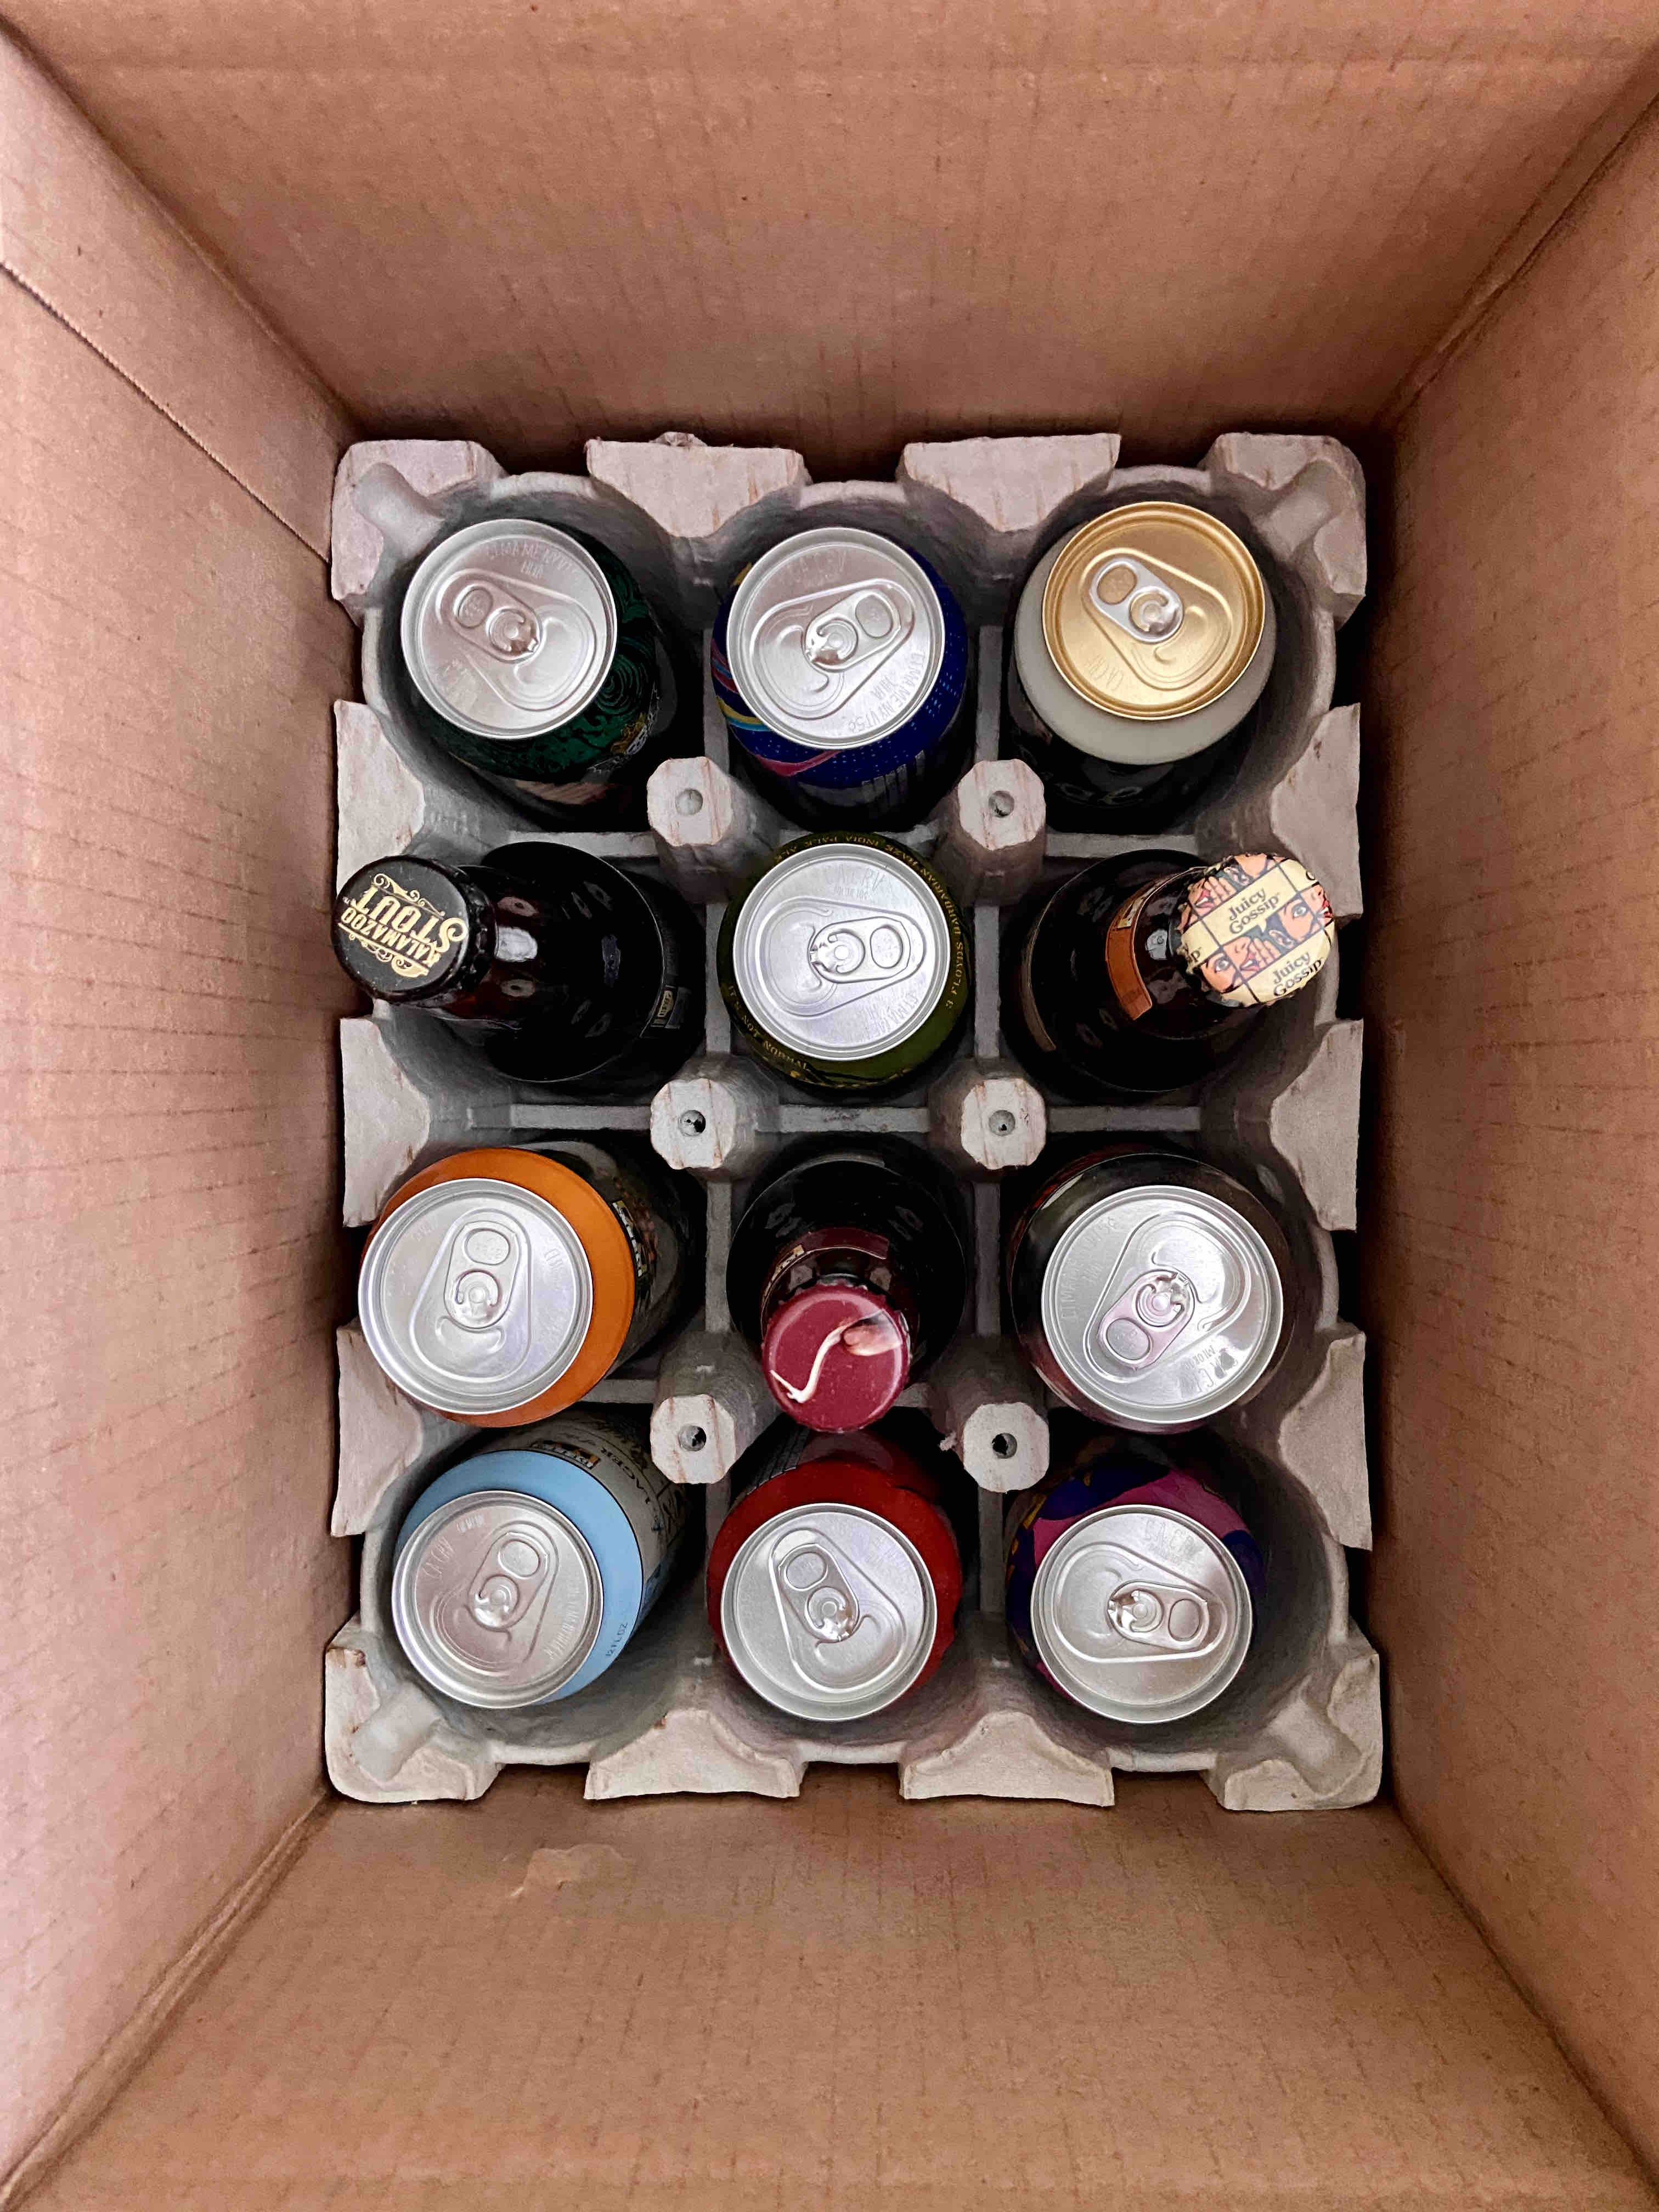 A mixed 12 pack of beers from Bell's Brewery and 3 Floyds from Half Time Beverage